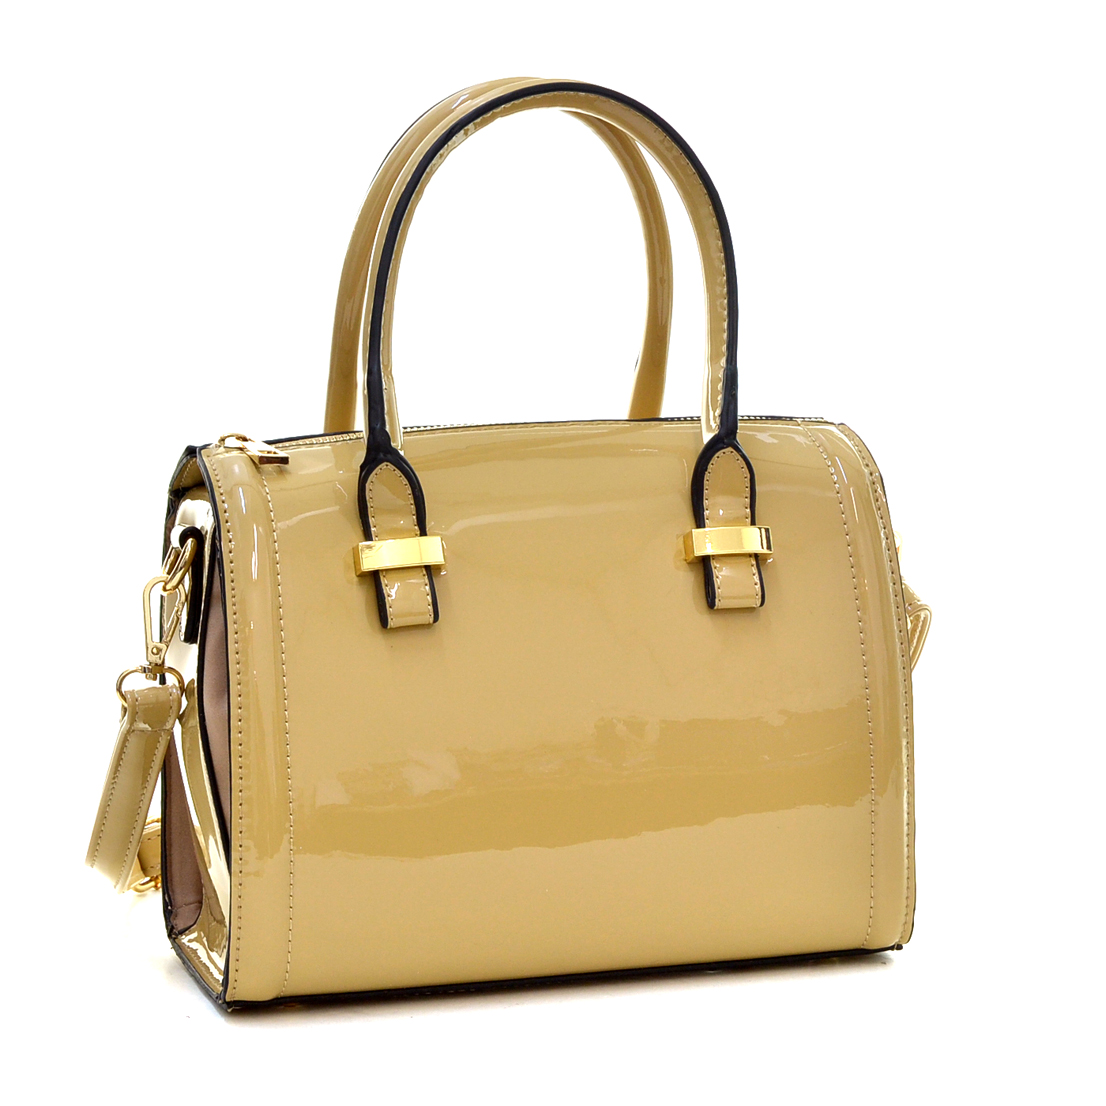 Mini Patent Faux Leather Barrel Body Satchel with Shoulder Strap